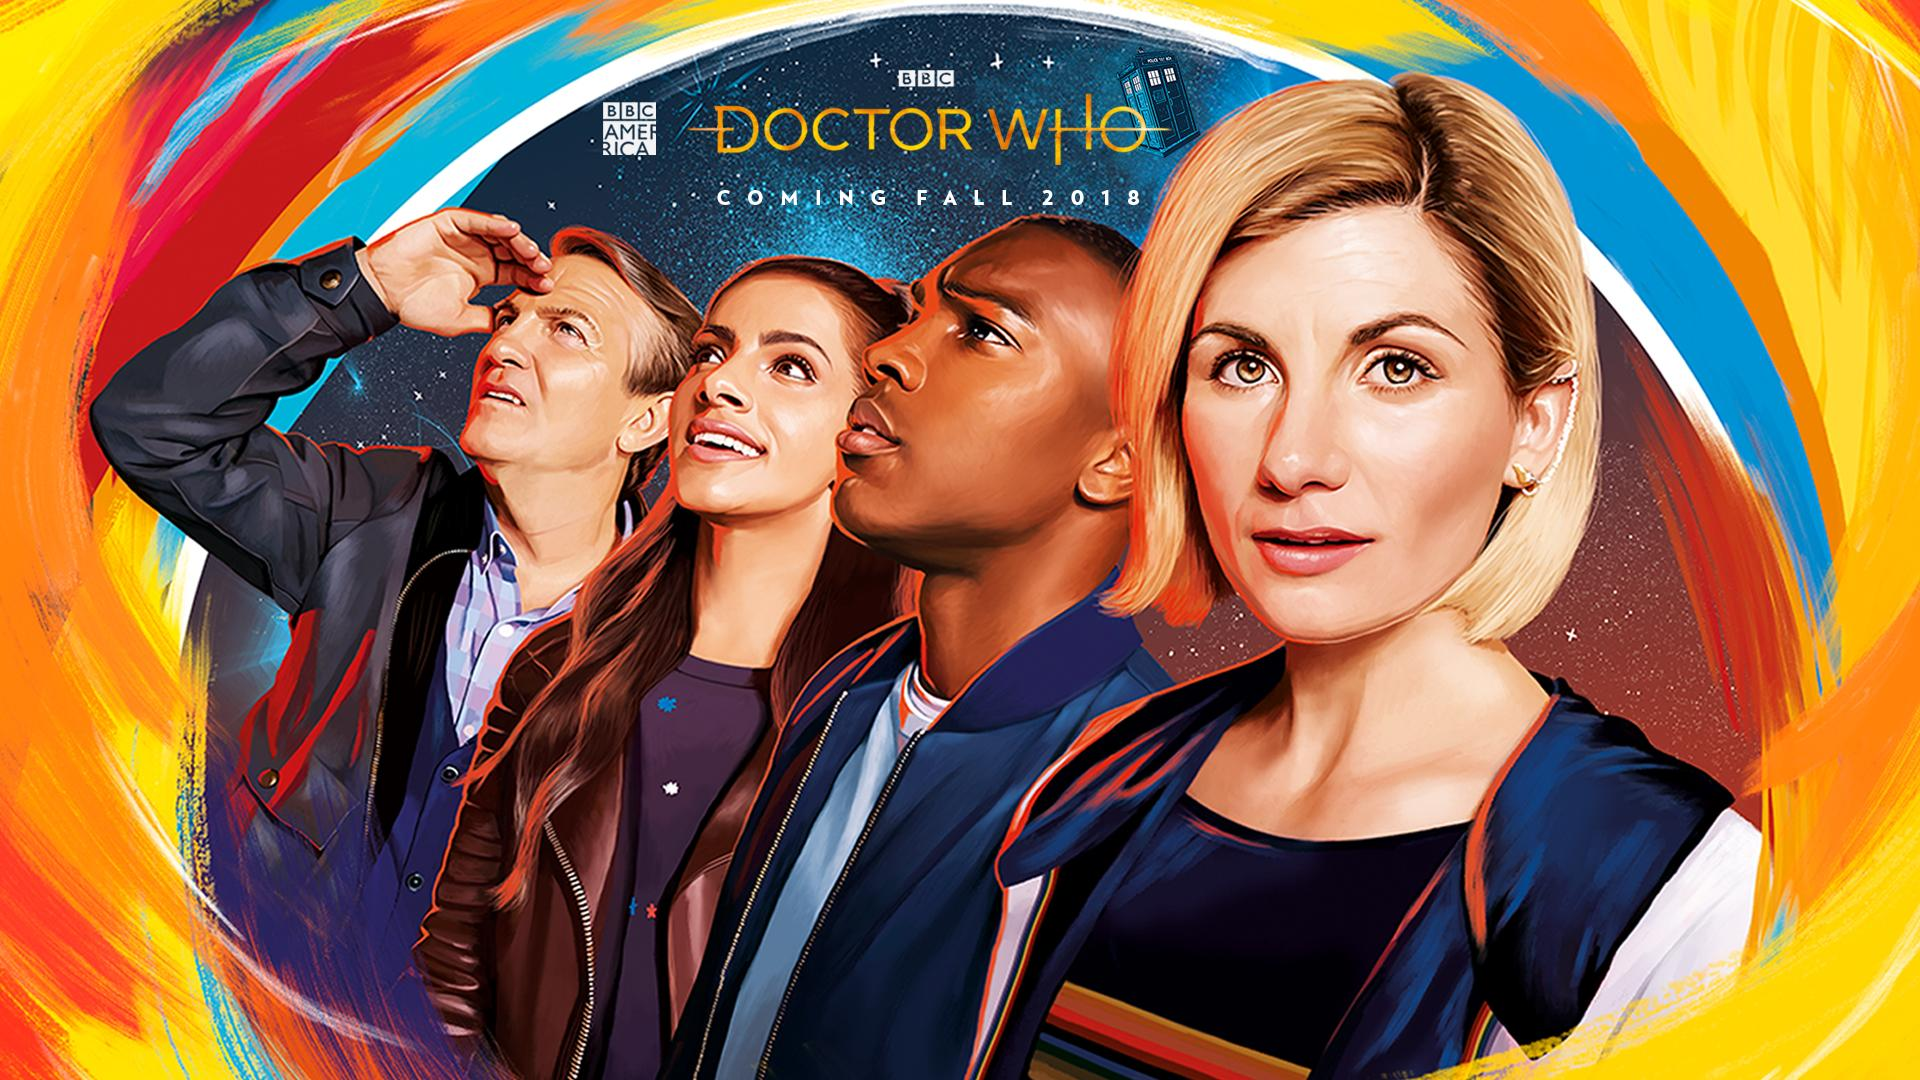 Doctor Who Season 11 news